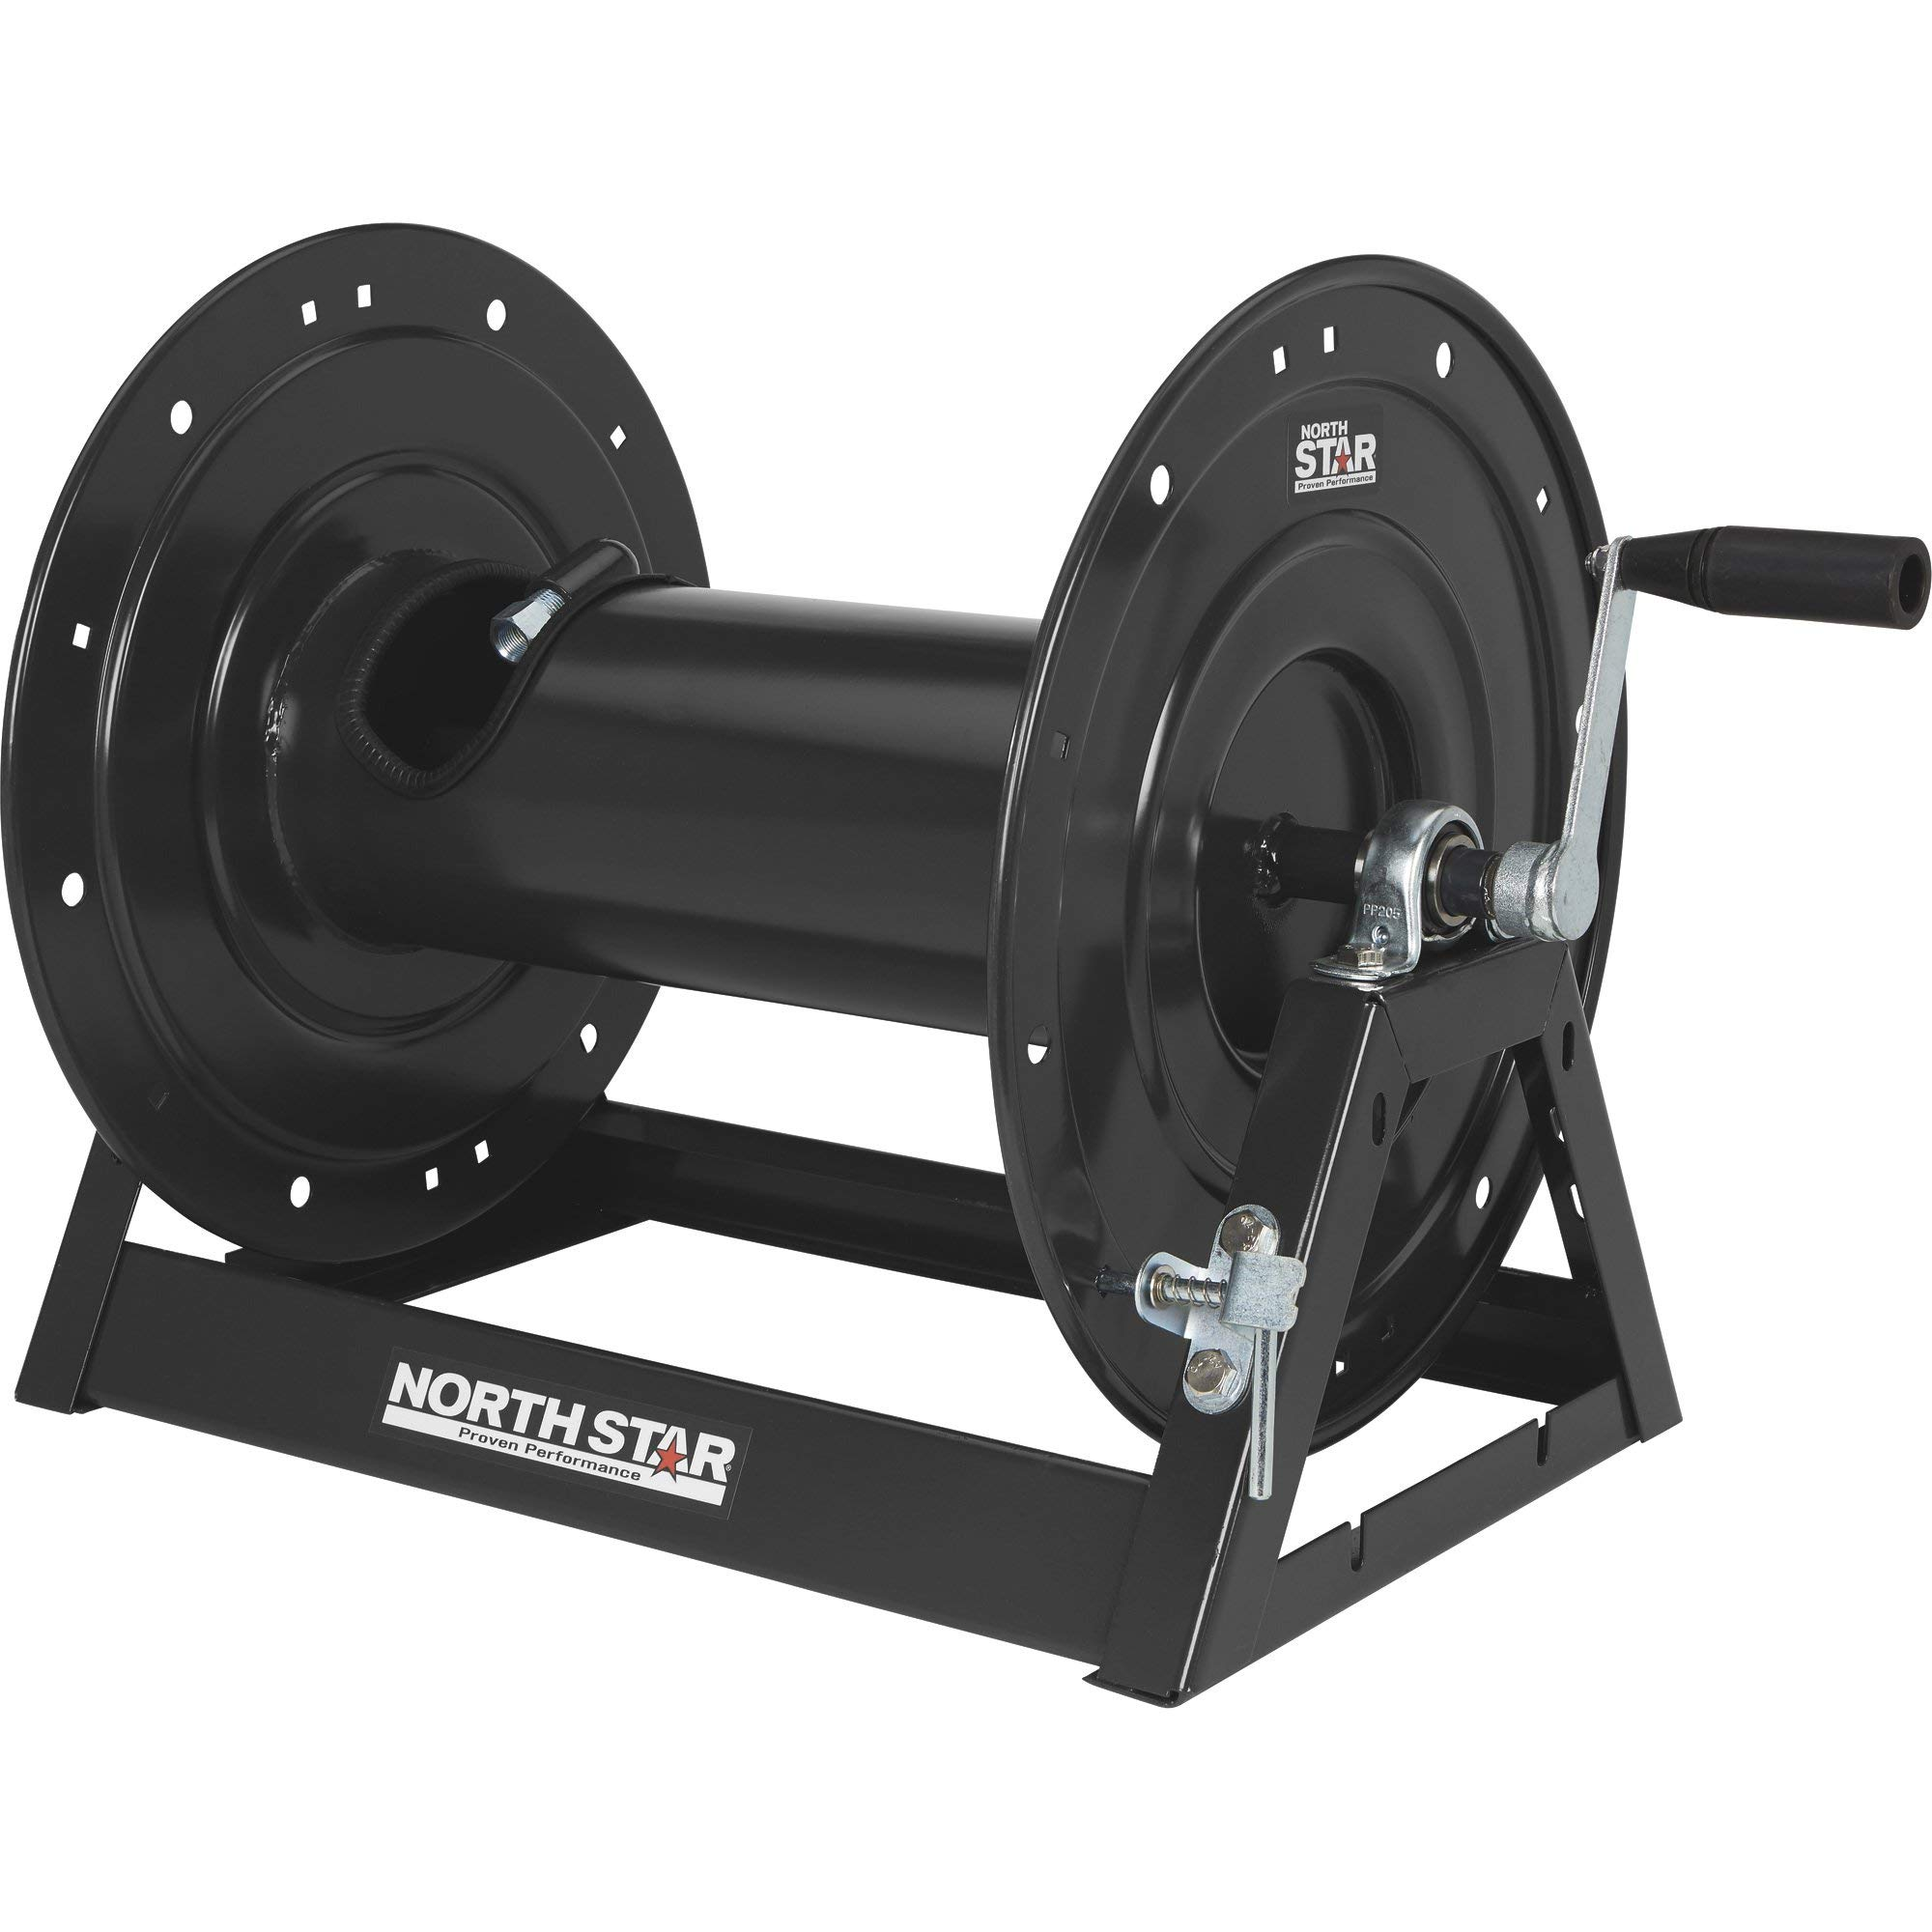 NorthStar Heavy-Duty A-Frame Hose Reel - 5000 PSI, 450ft. Capacity by NorthStar